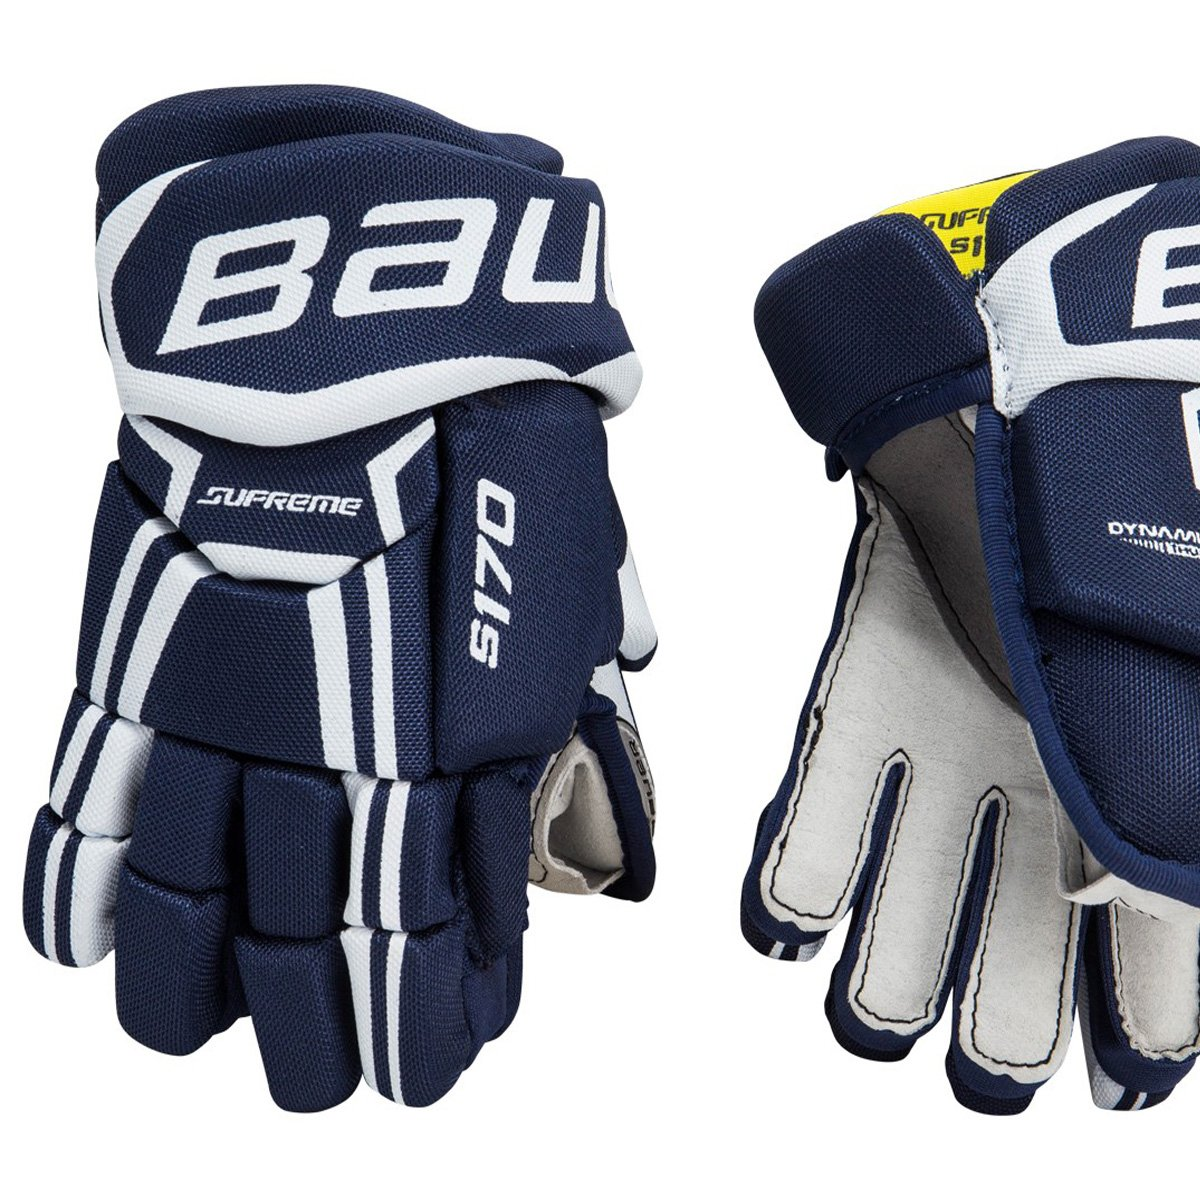 "Bauer Supreme S170 Youth Ice Hockey Gloves, 2-Piece Fingers, 8"" or 9"", Navy Blue"